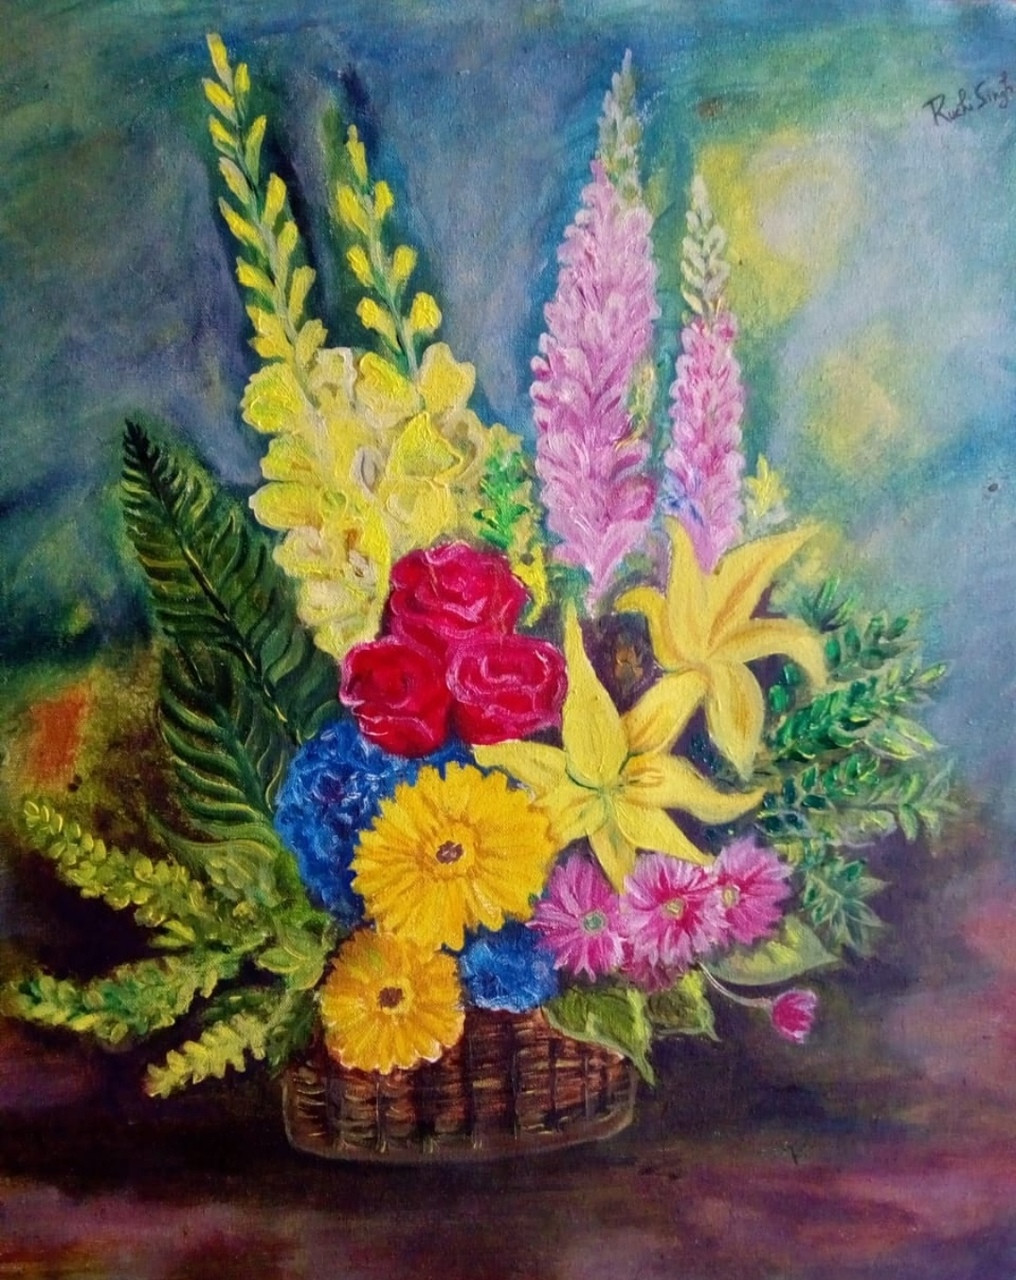 Buy Flower Vase Handmade Painting by RUCHI SINGH. CodeART_4433_34963 - Paintings for Sale online in India. & Buy Flower Vase Handmade Painting by RUCHI SINGH. Code ...